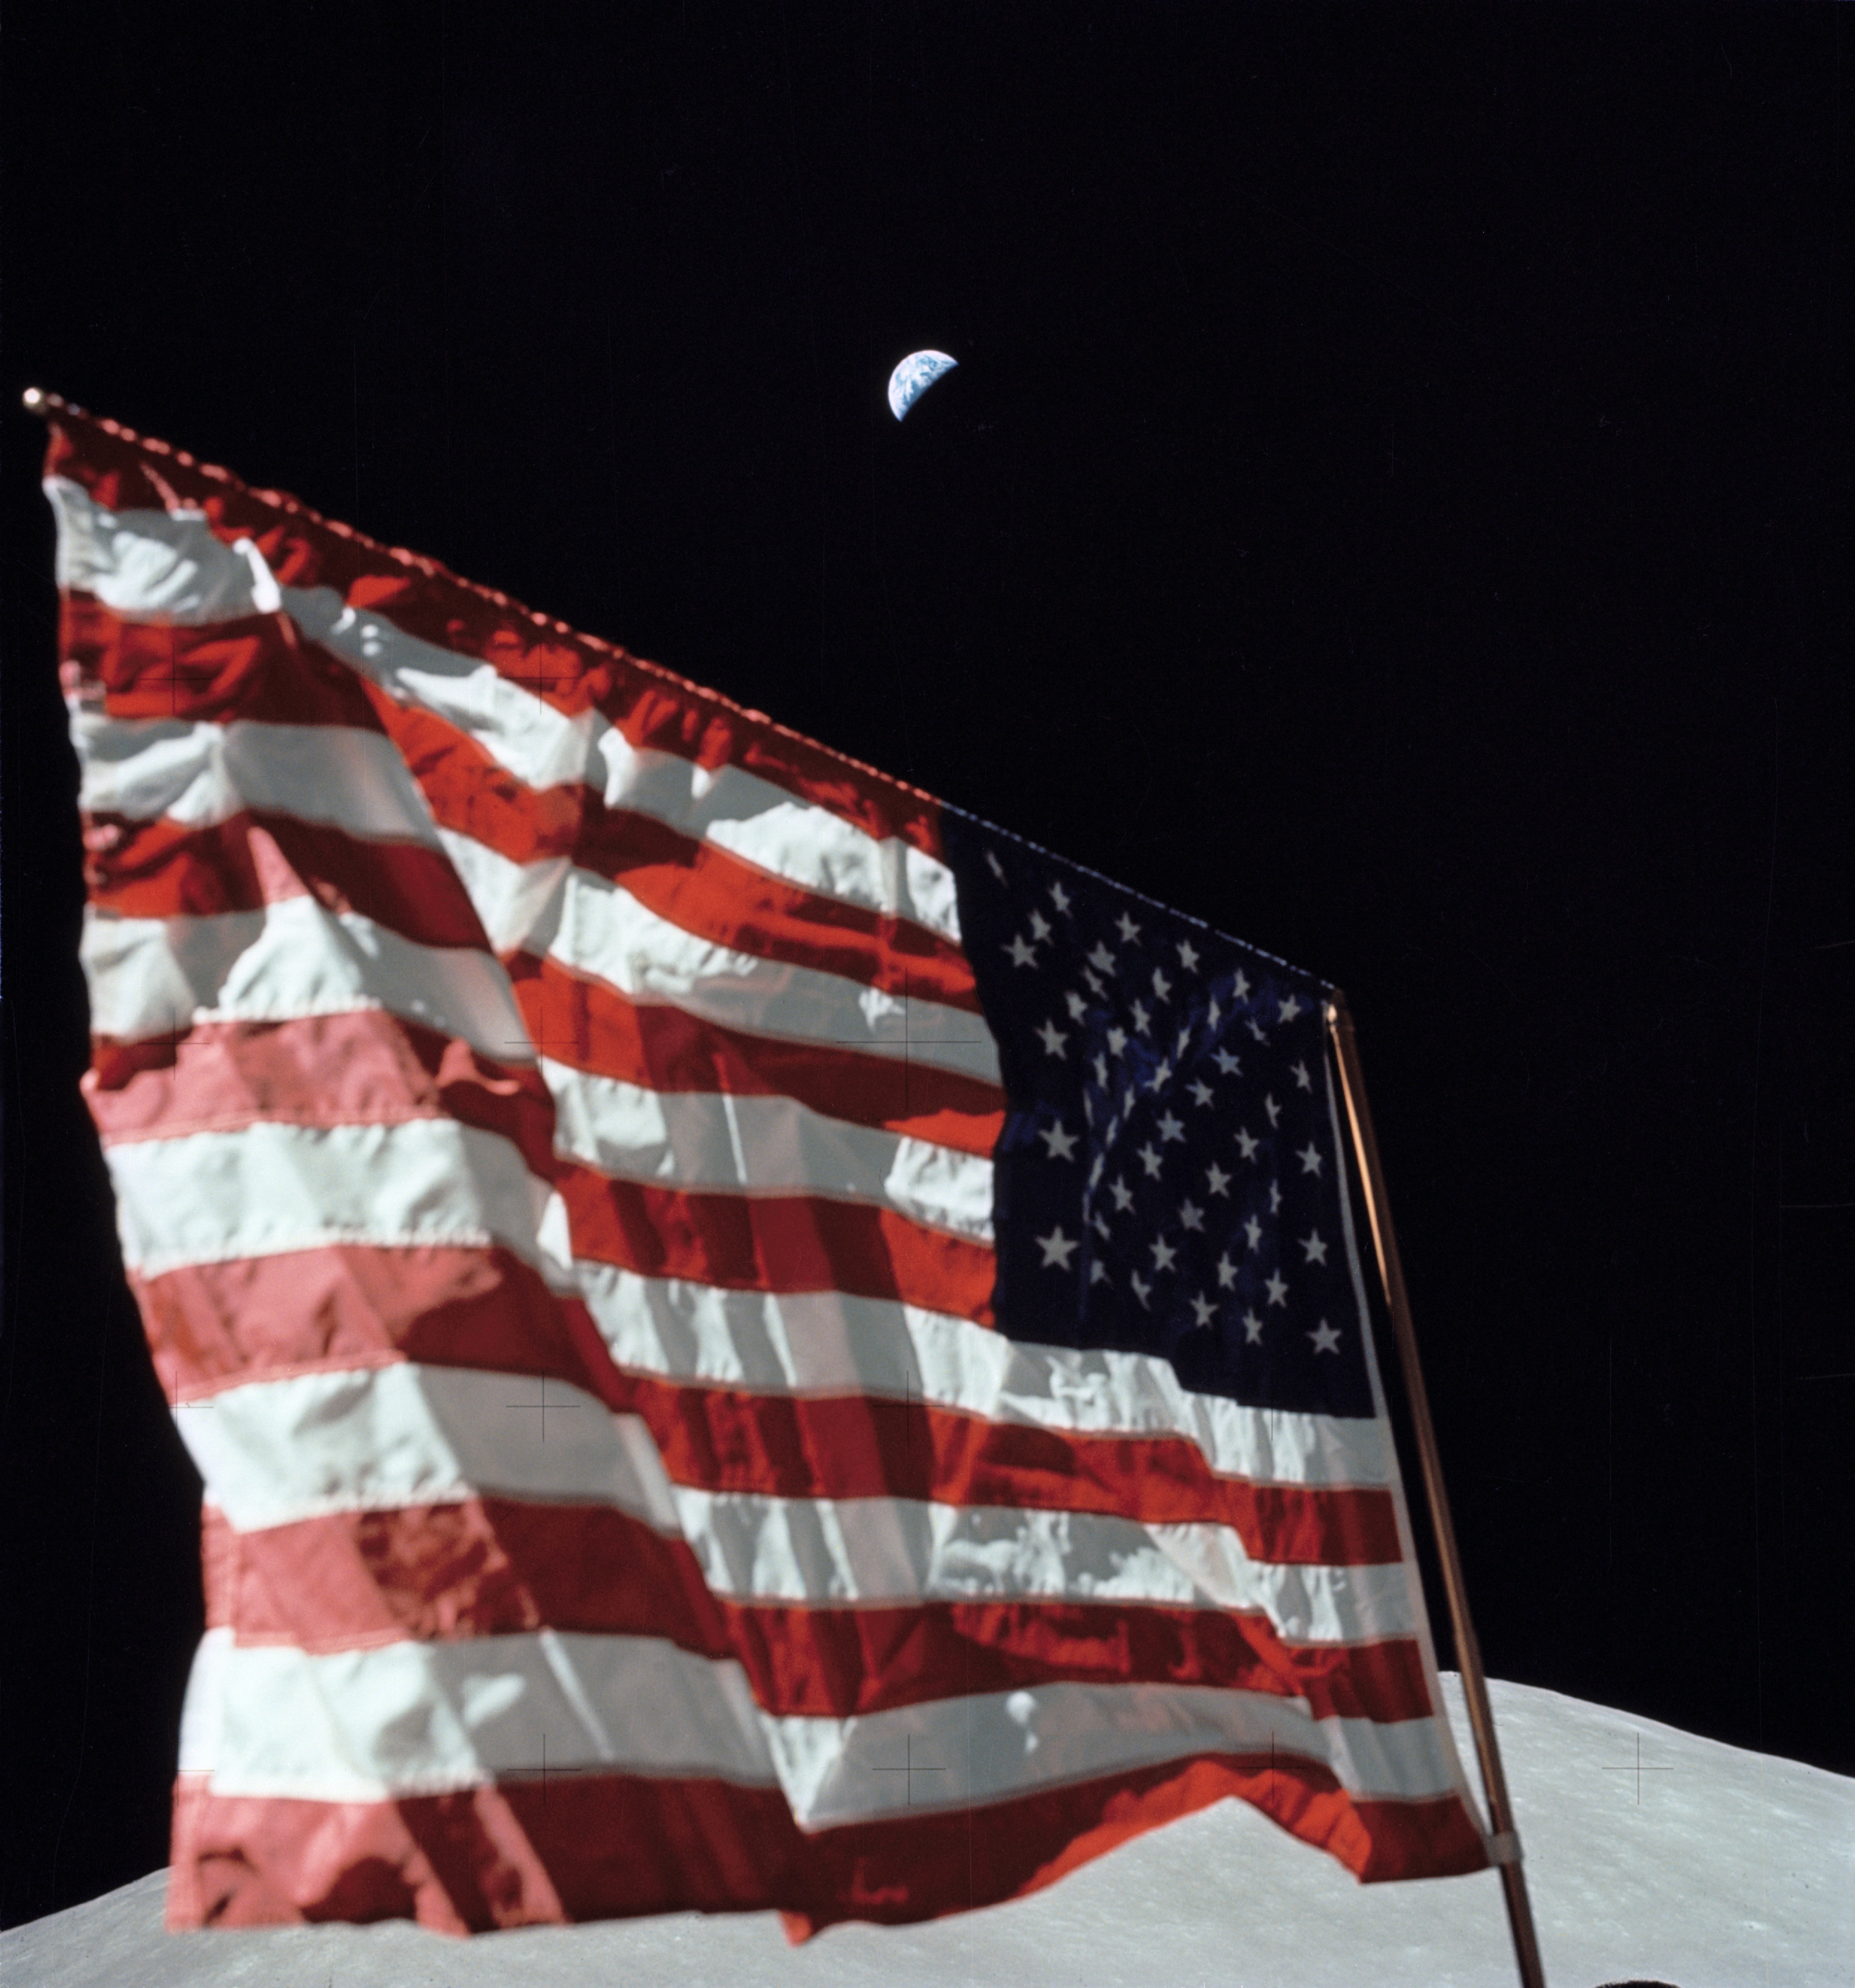 A close-up view of the U.S. flag deployed on the moon at the Taurus-Littrow landing site by the crewmen of the Apollo 17